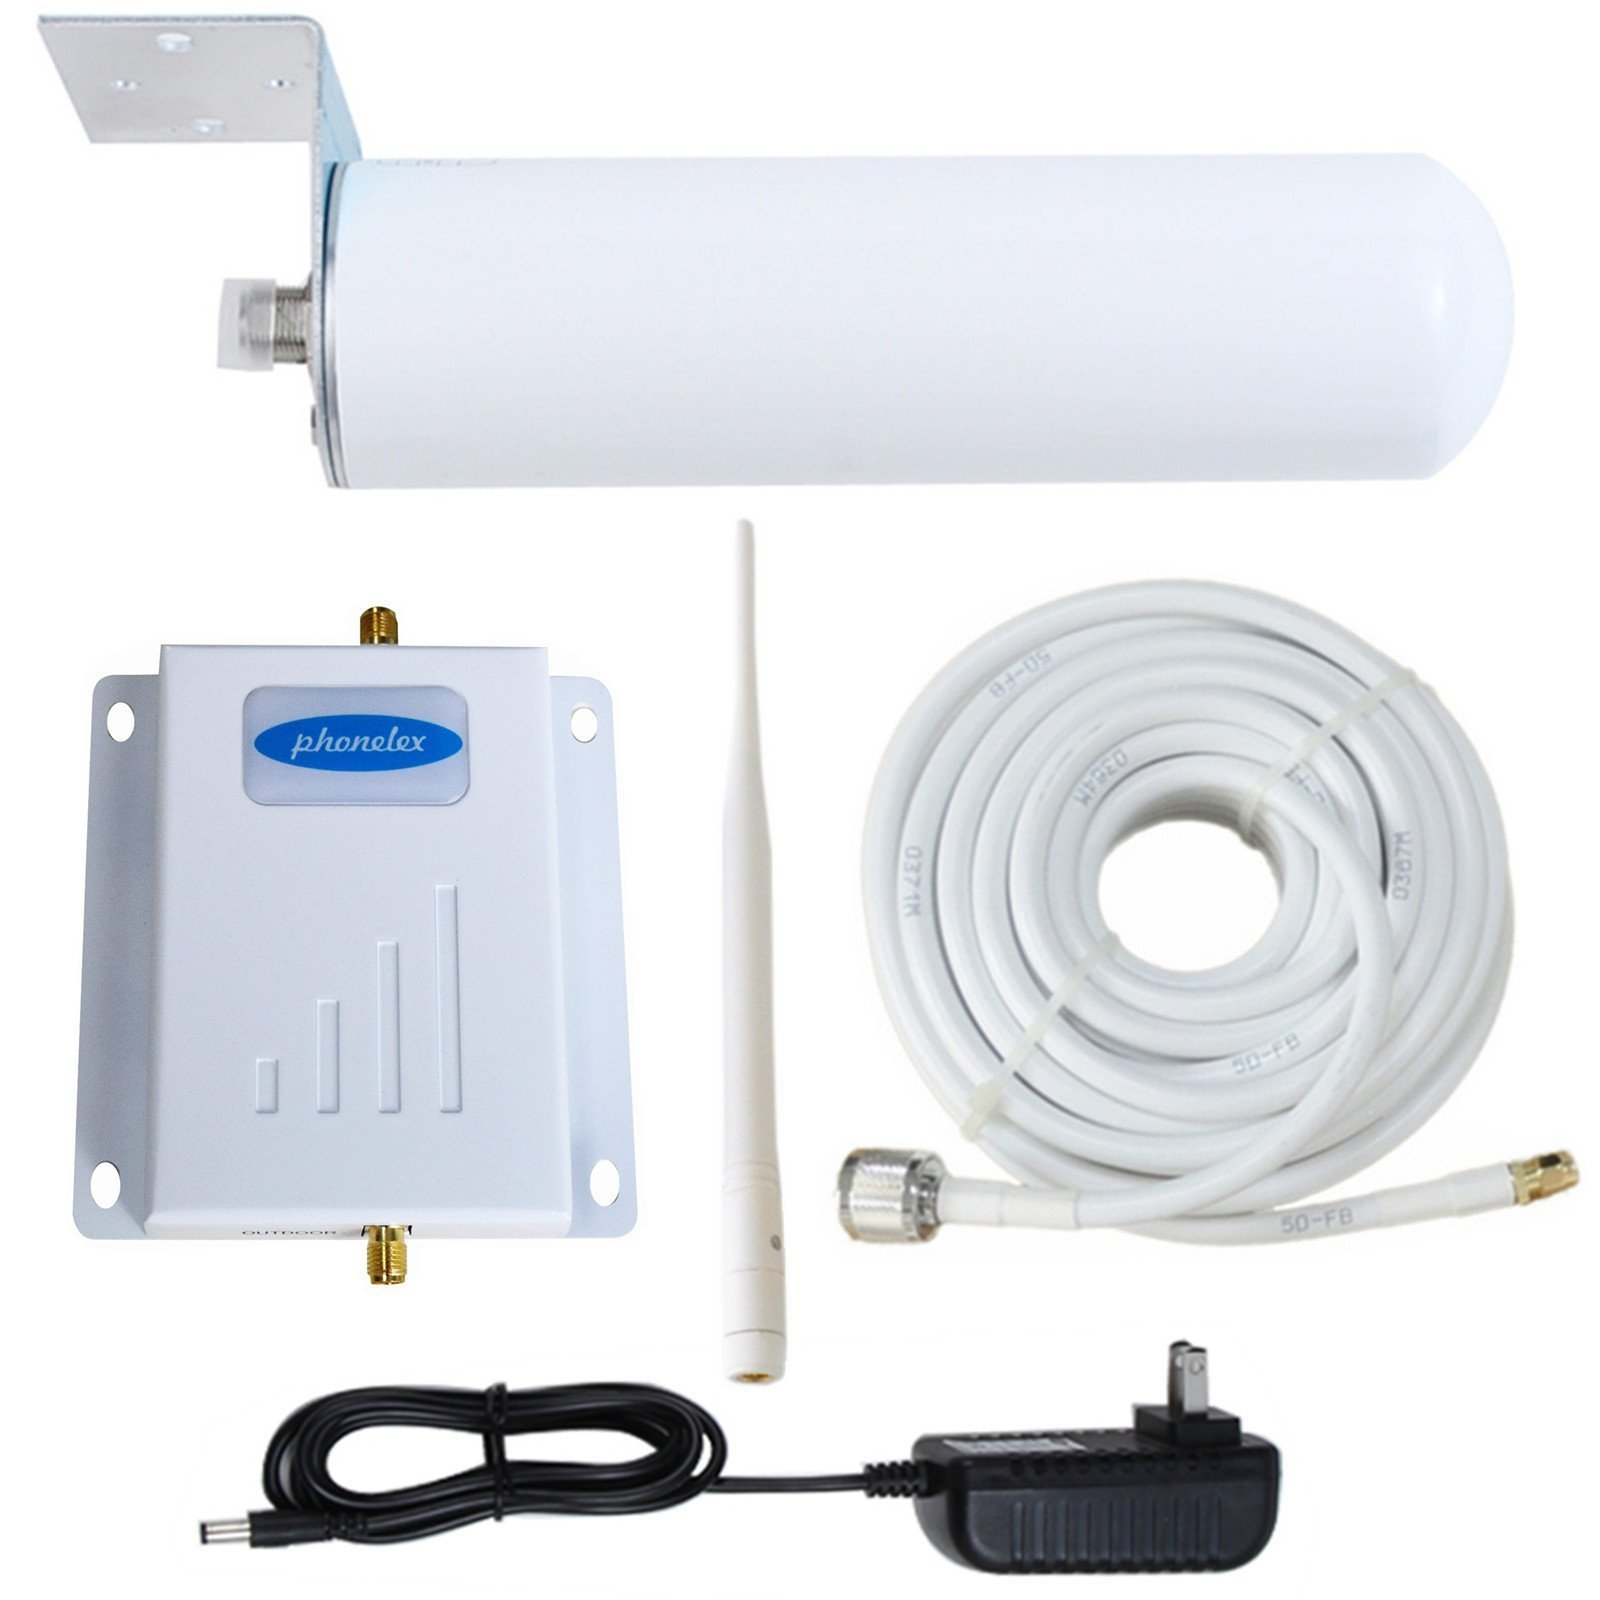 Phonelex GSM 2G 3G 4G CDMA Band2 1900MHz Cell Phone Signal Booster Repeater Mobile signal Amplifier with Indoor Whip Antenna and Outdoor Omni-Directional Antenna for home Office basement warehouse